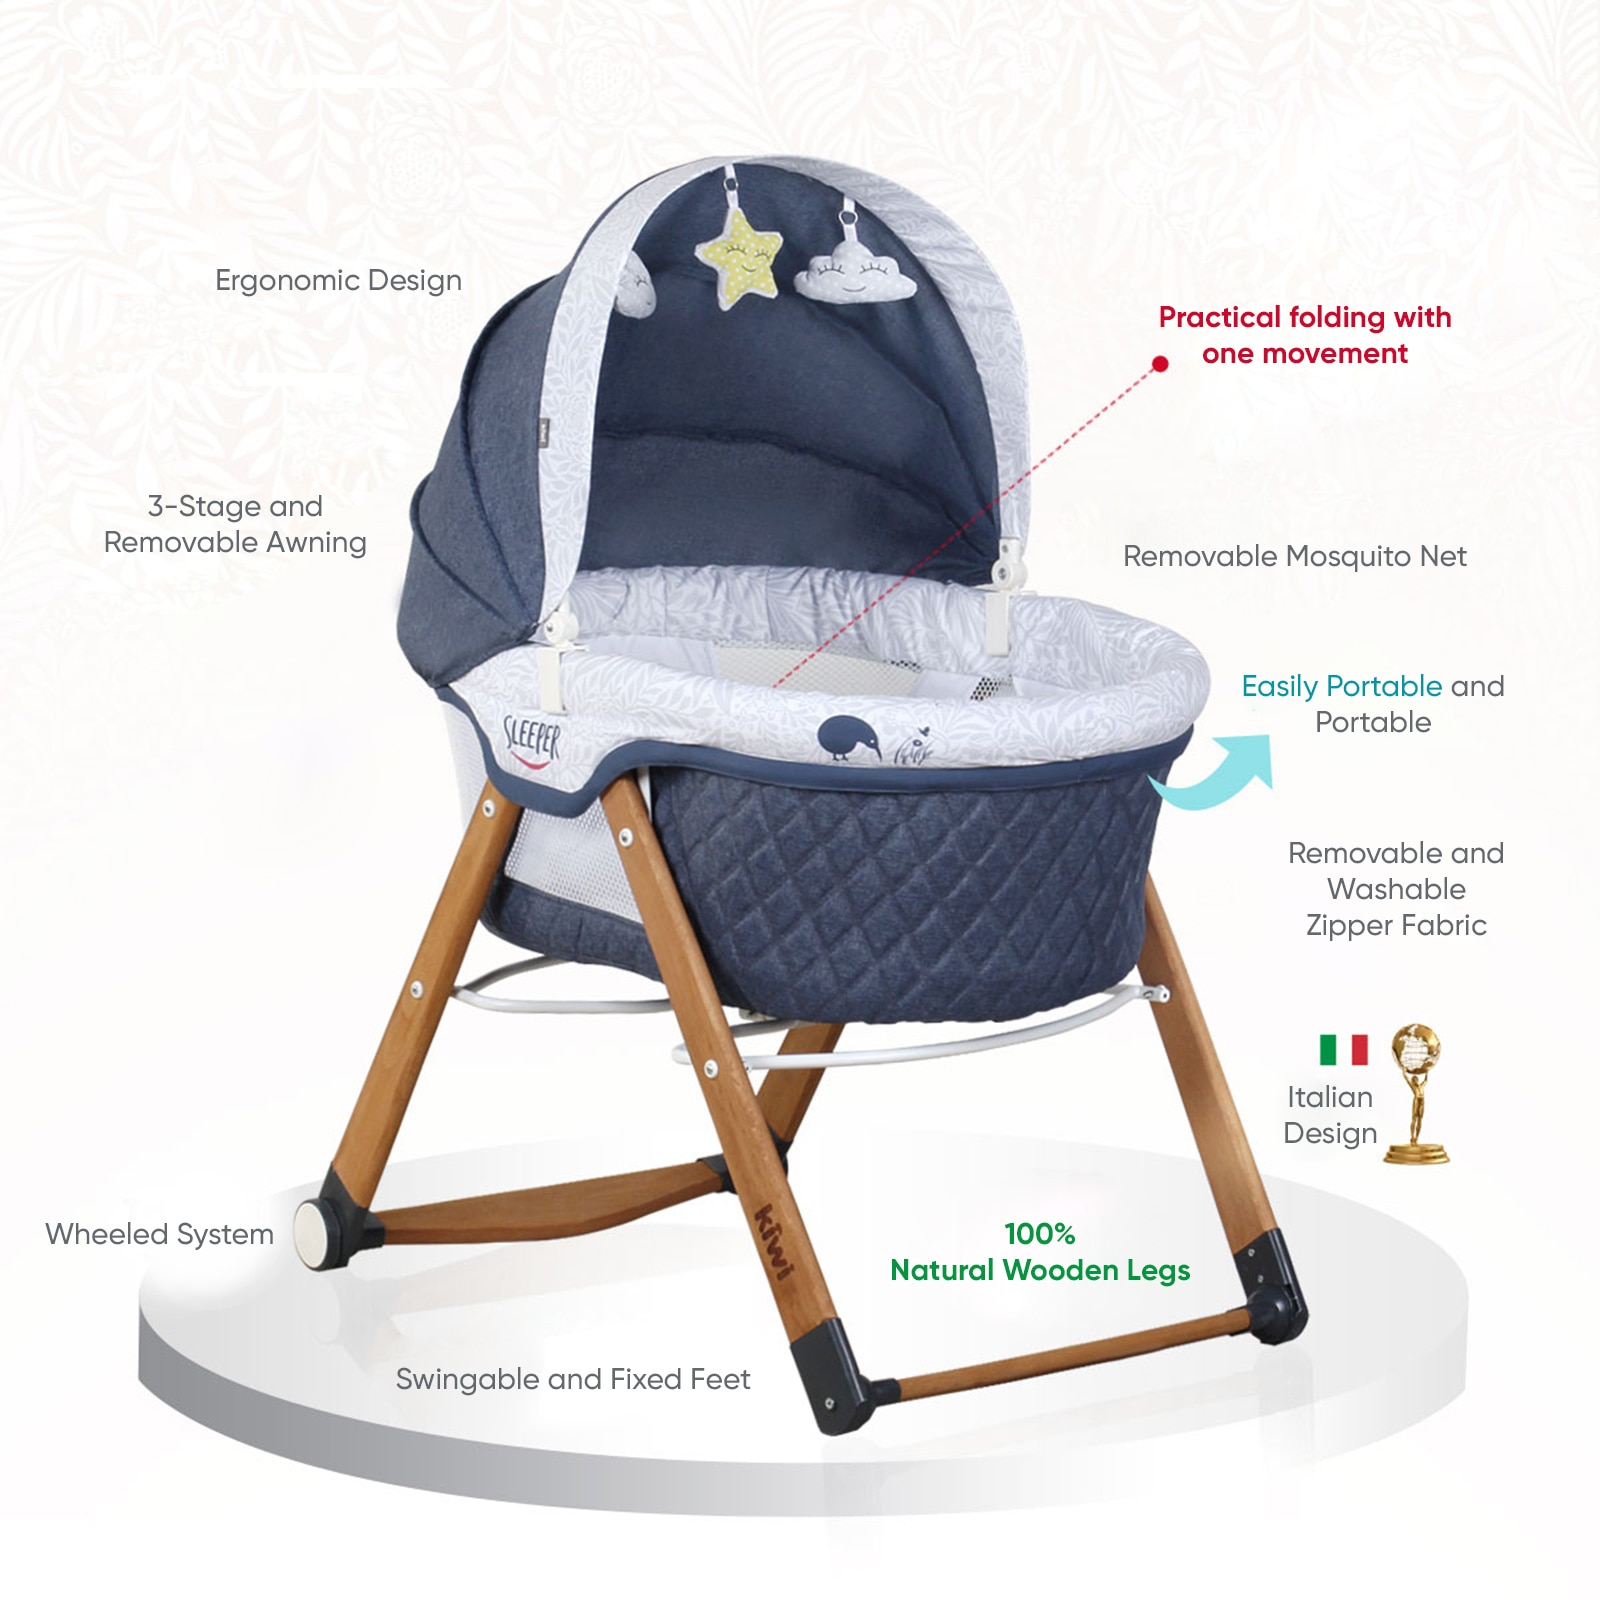 Natural Wooden Rocking Folding Crib Wooden Baby Crib Child Bed Quilt Pillow Mosquito Net Cradle Rocking Chair Swing enlarge